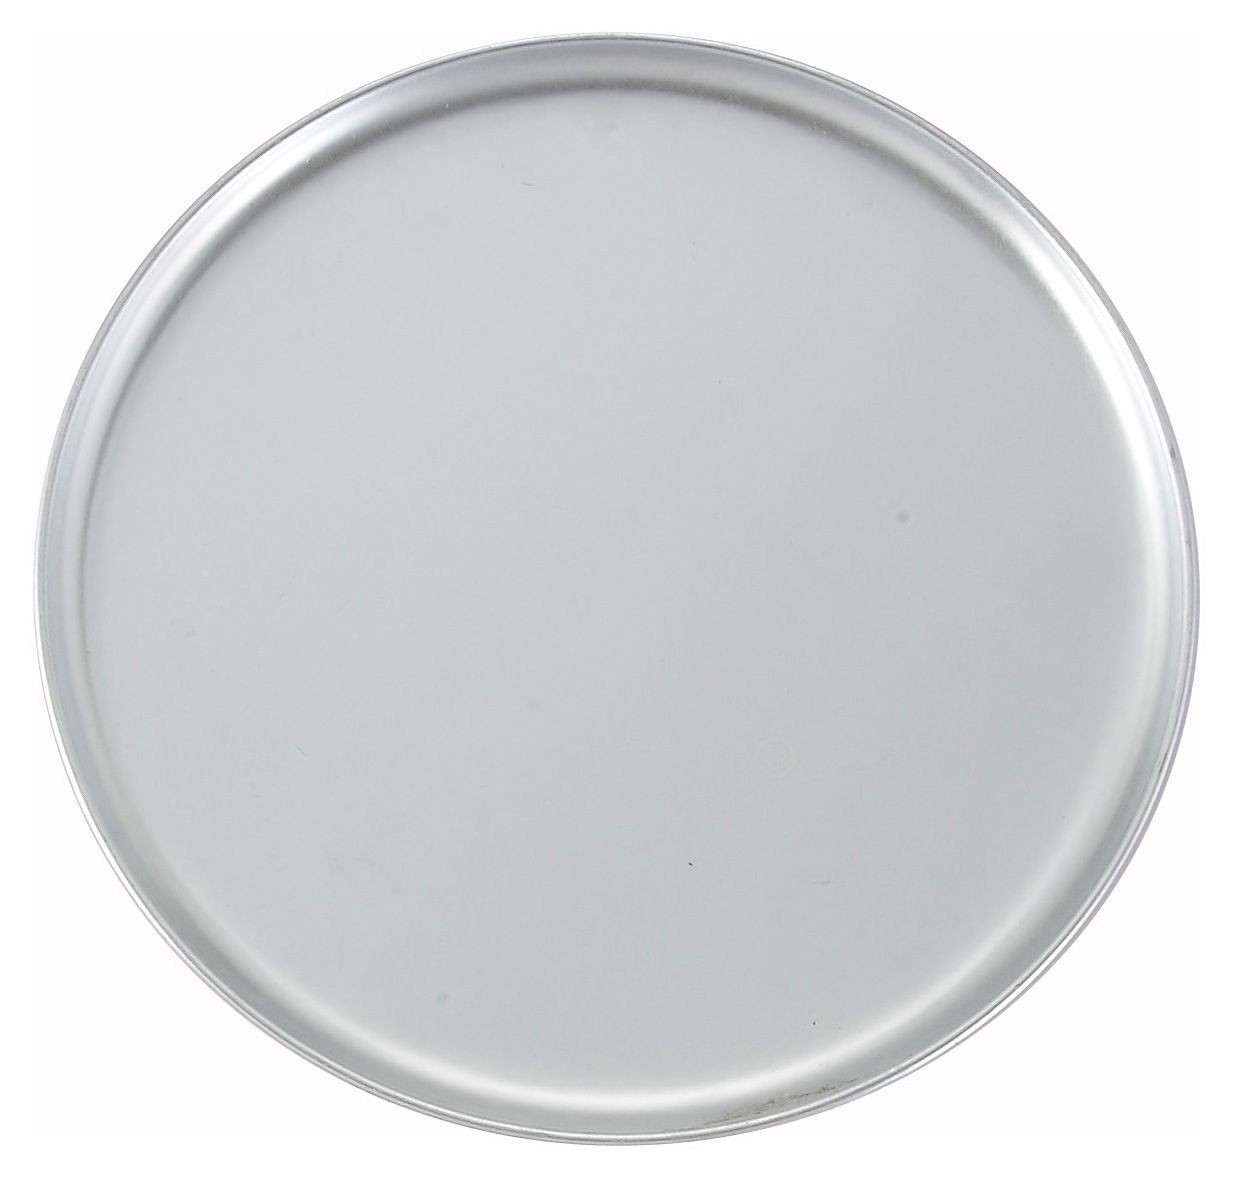 Coupe-Style Aluminum Pizza Pan - 11